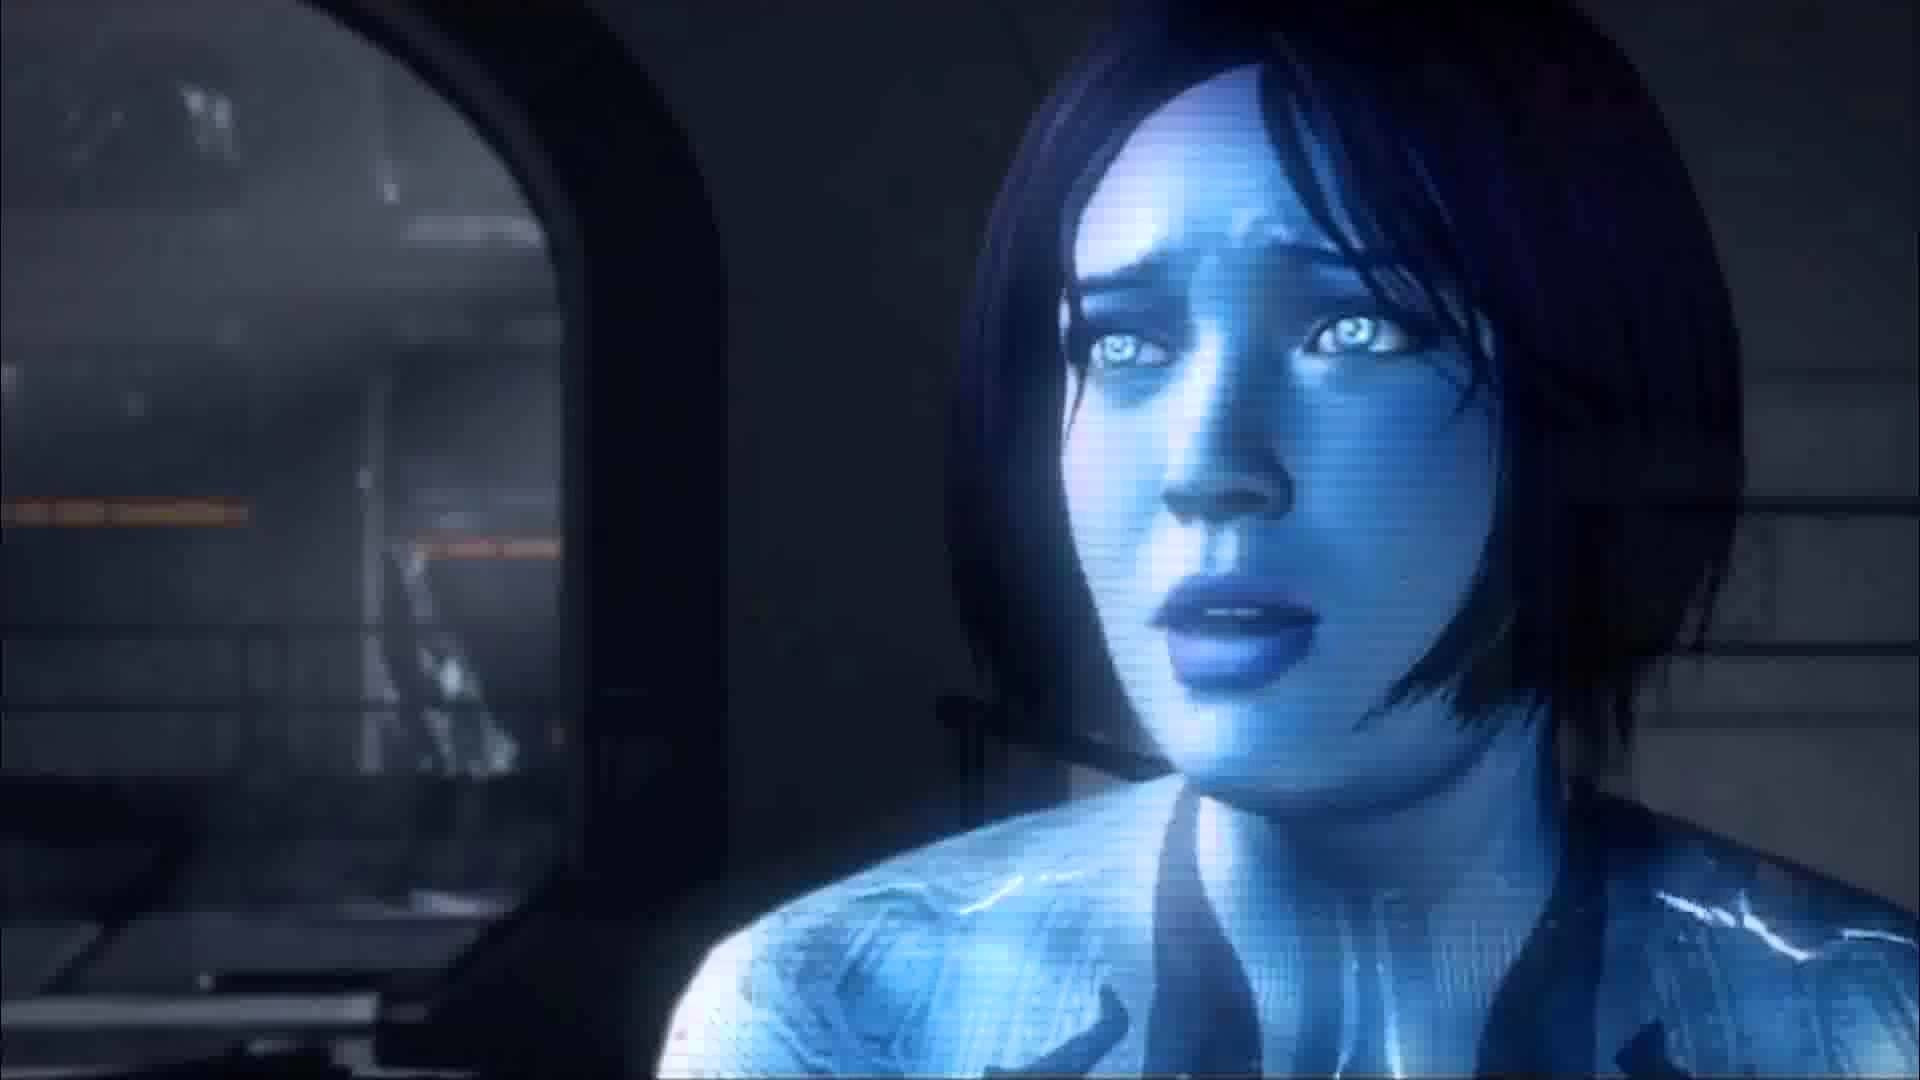 Cortana Hd Wallpapers 1080p 68 Images